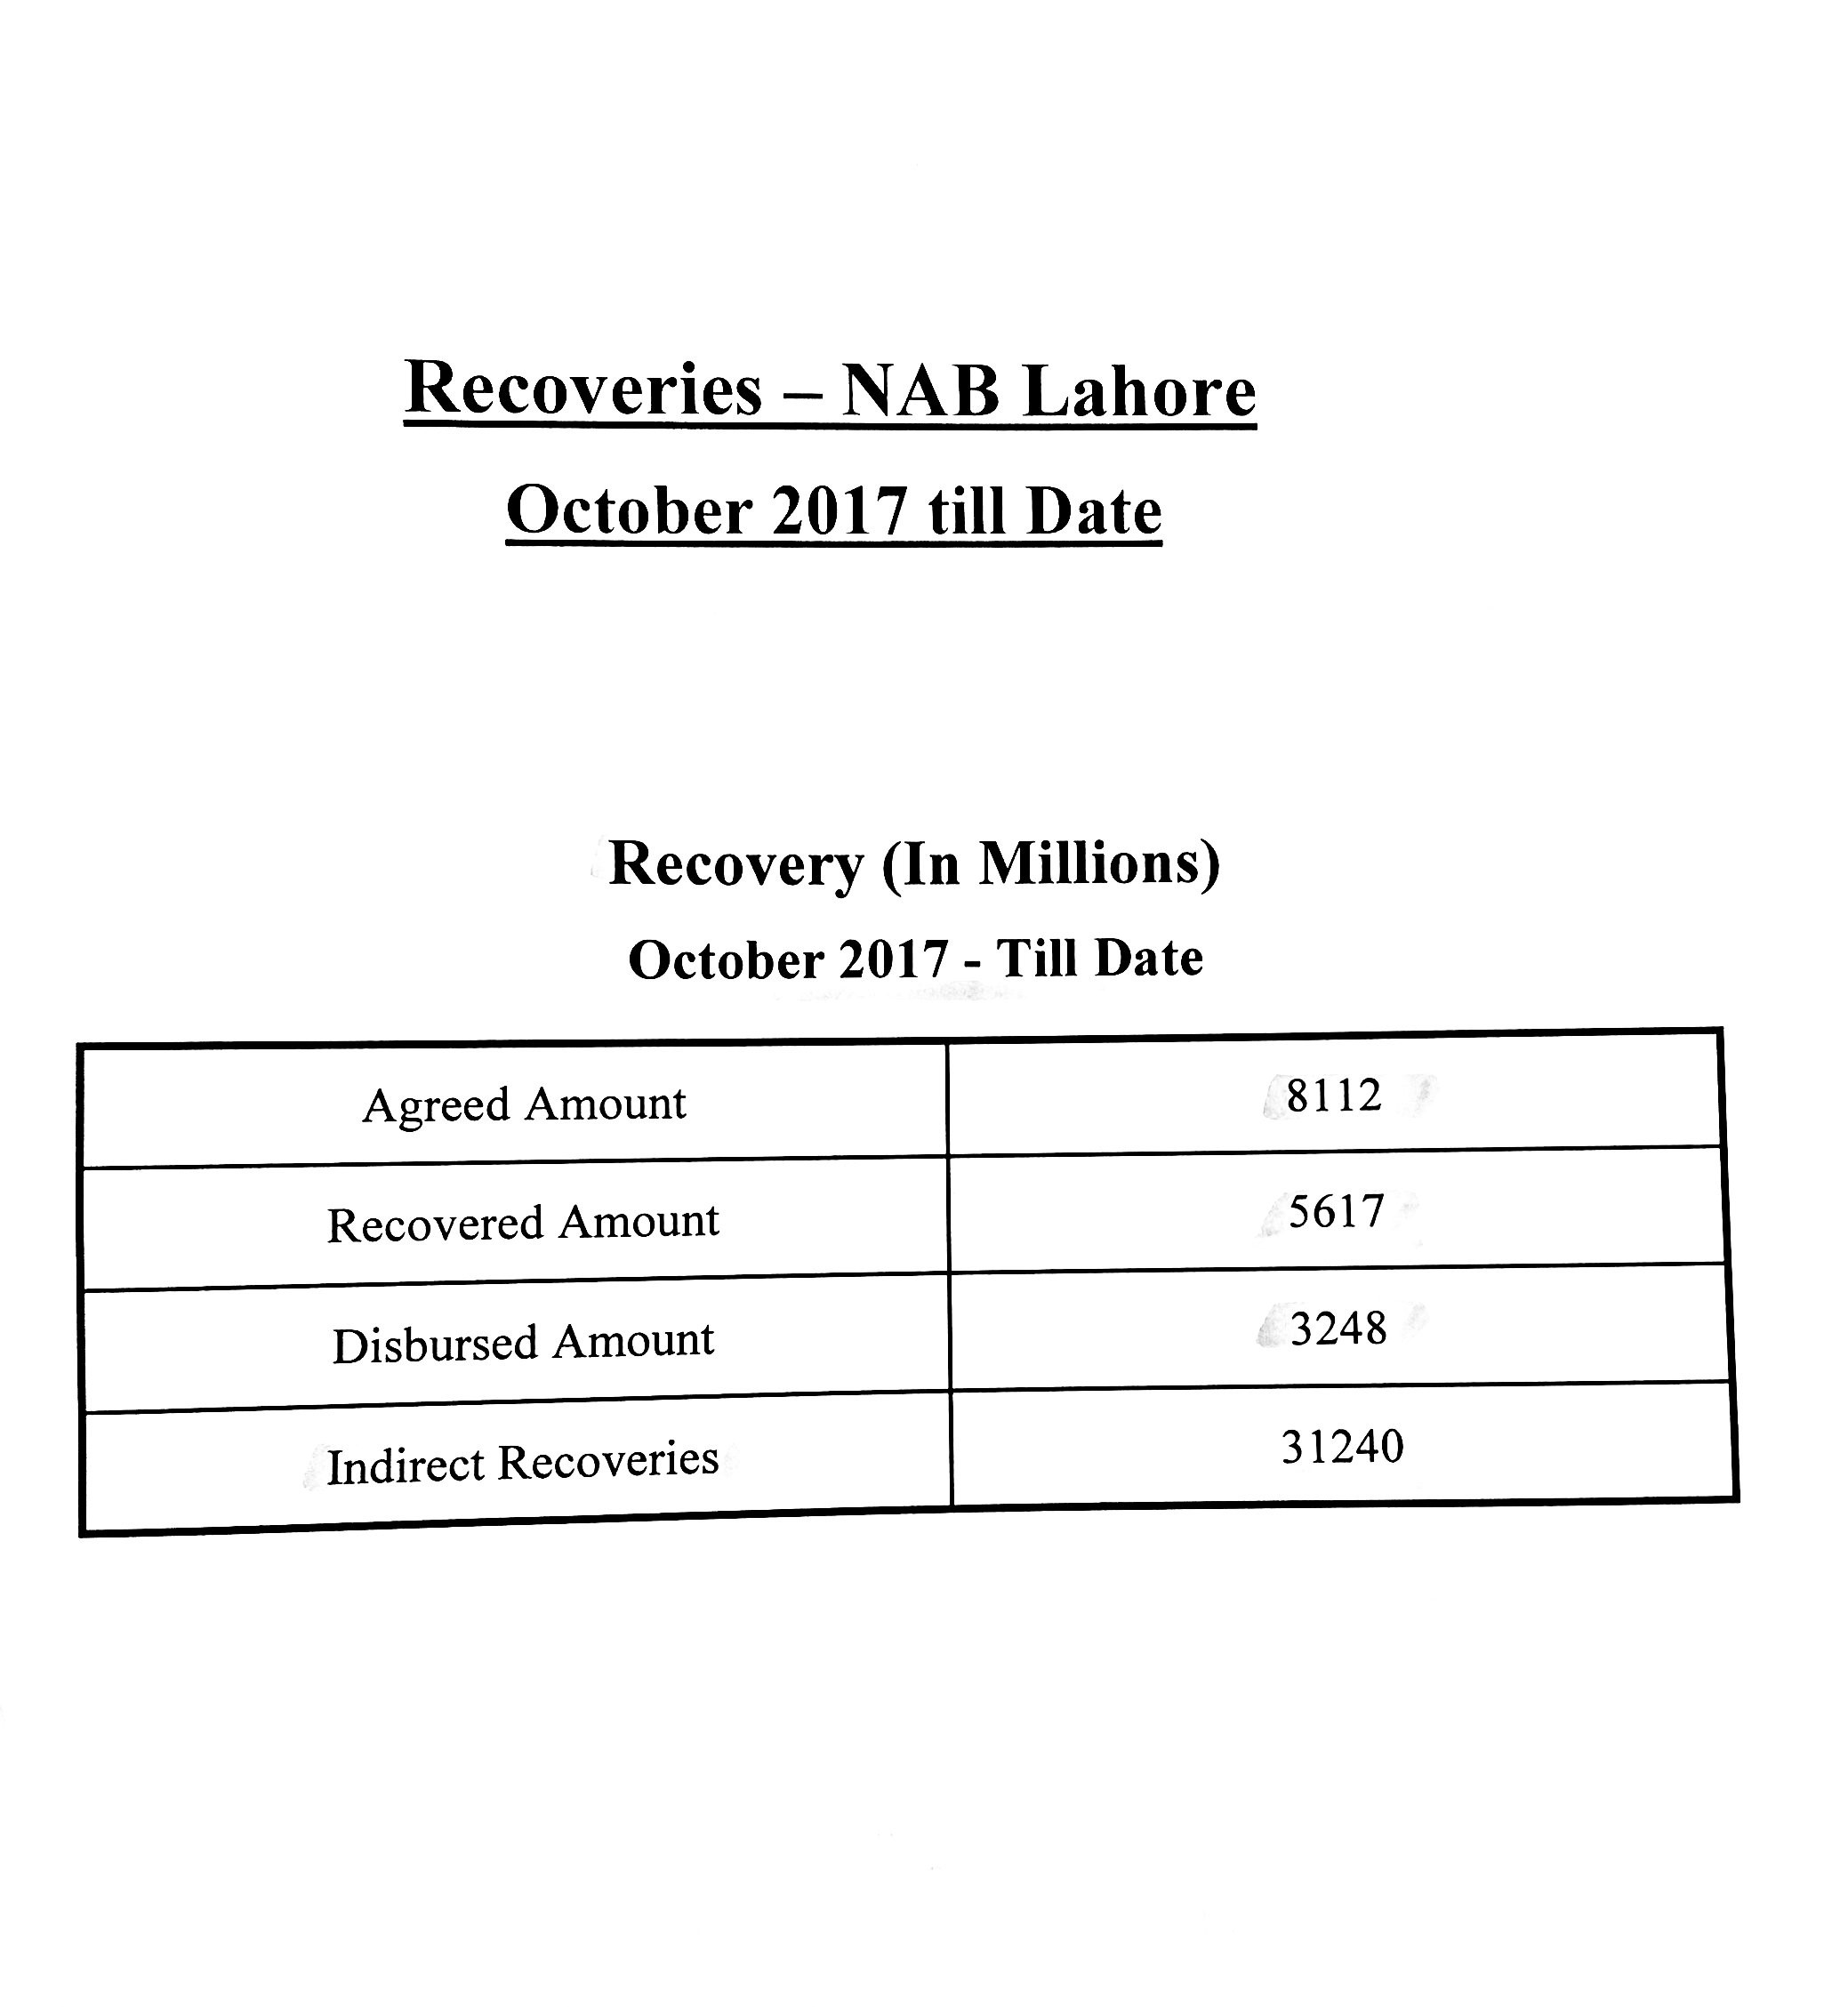 NAB Lhr overall Recoveries